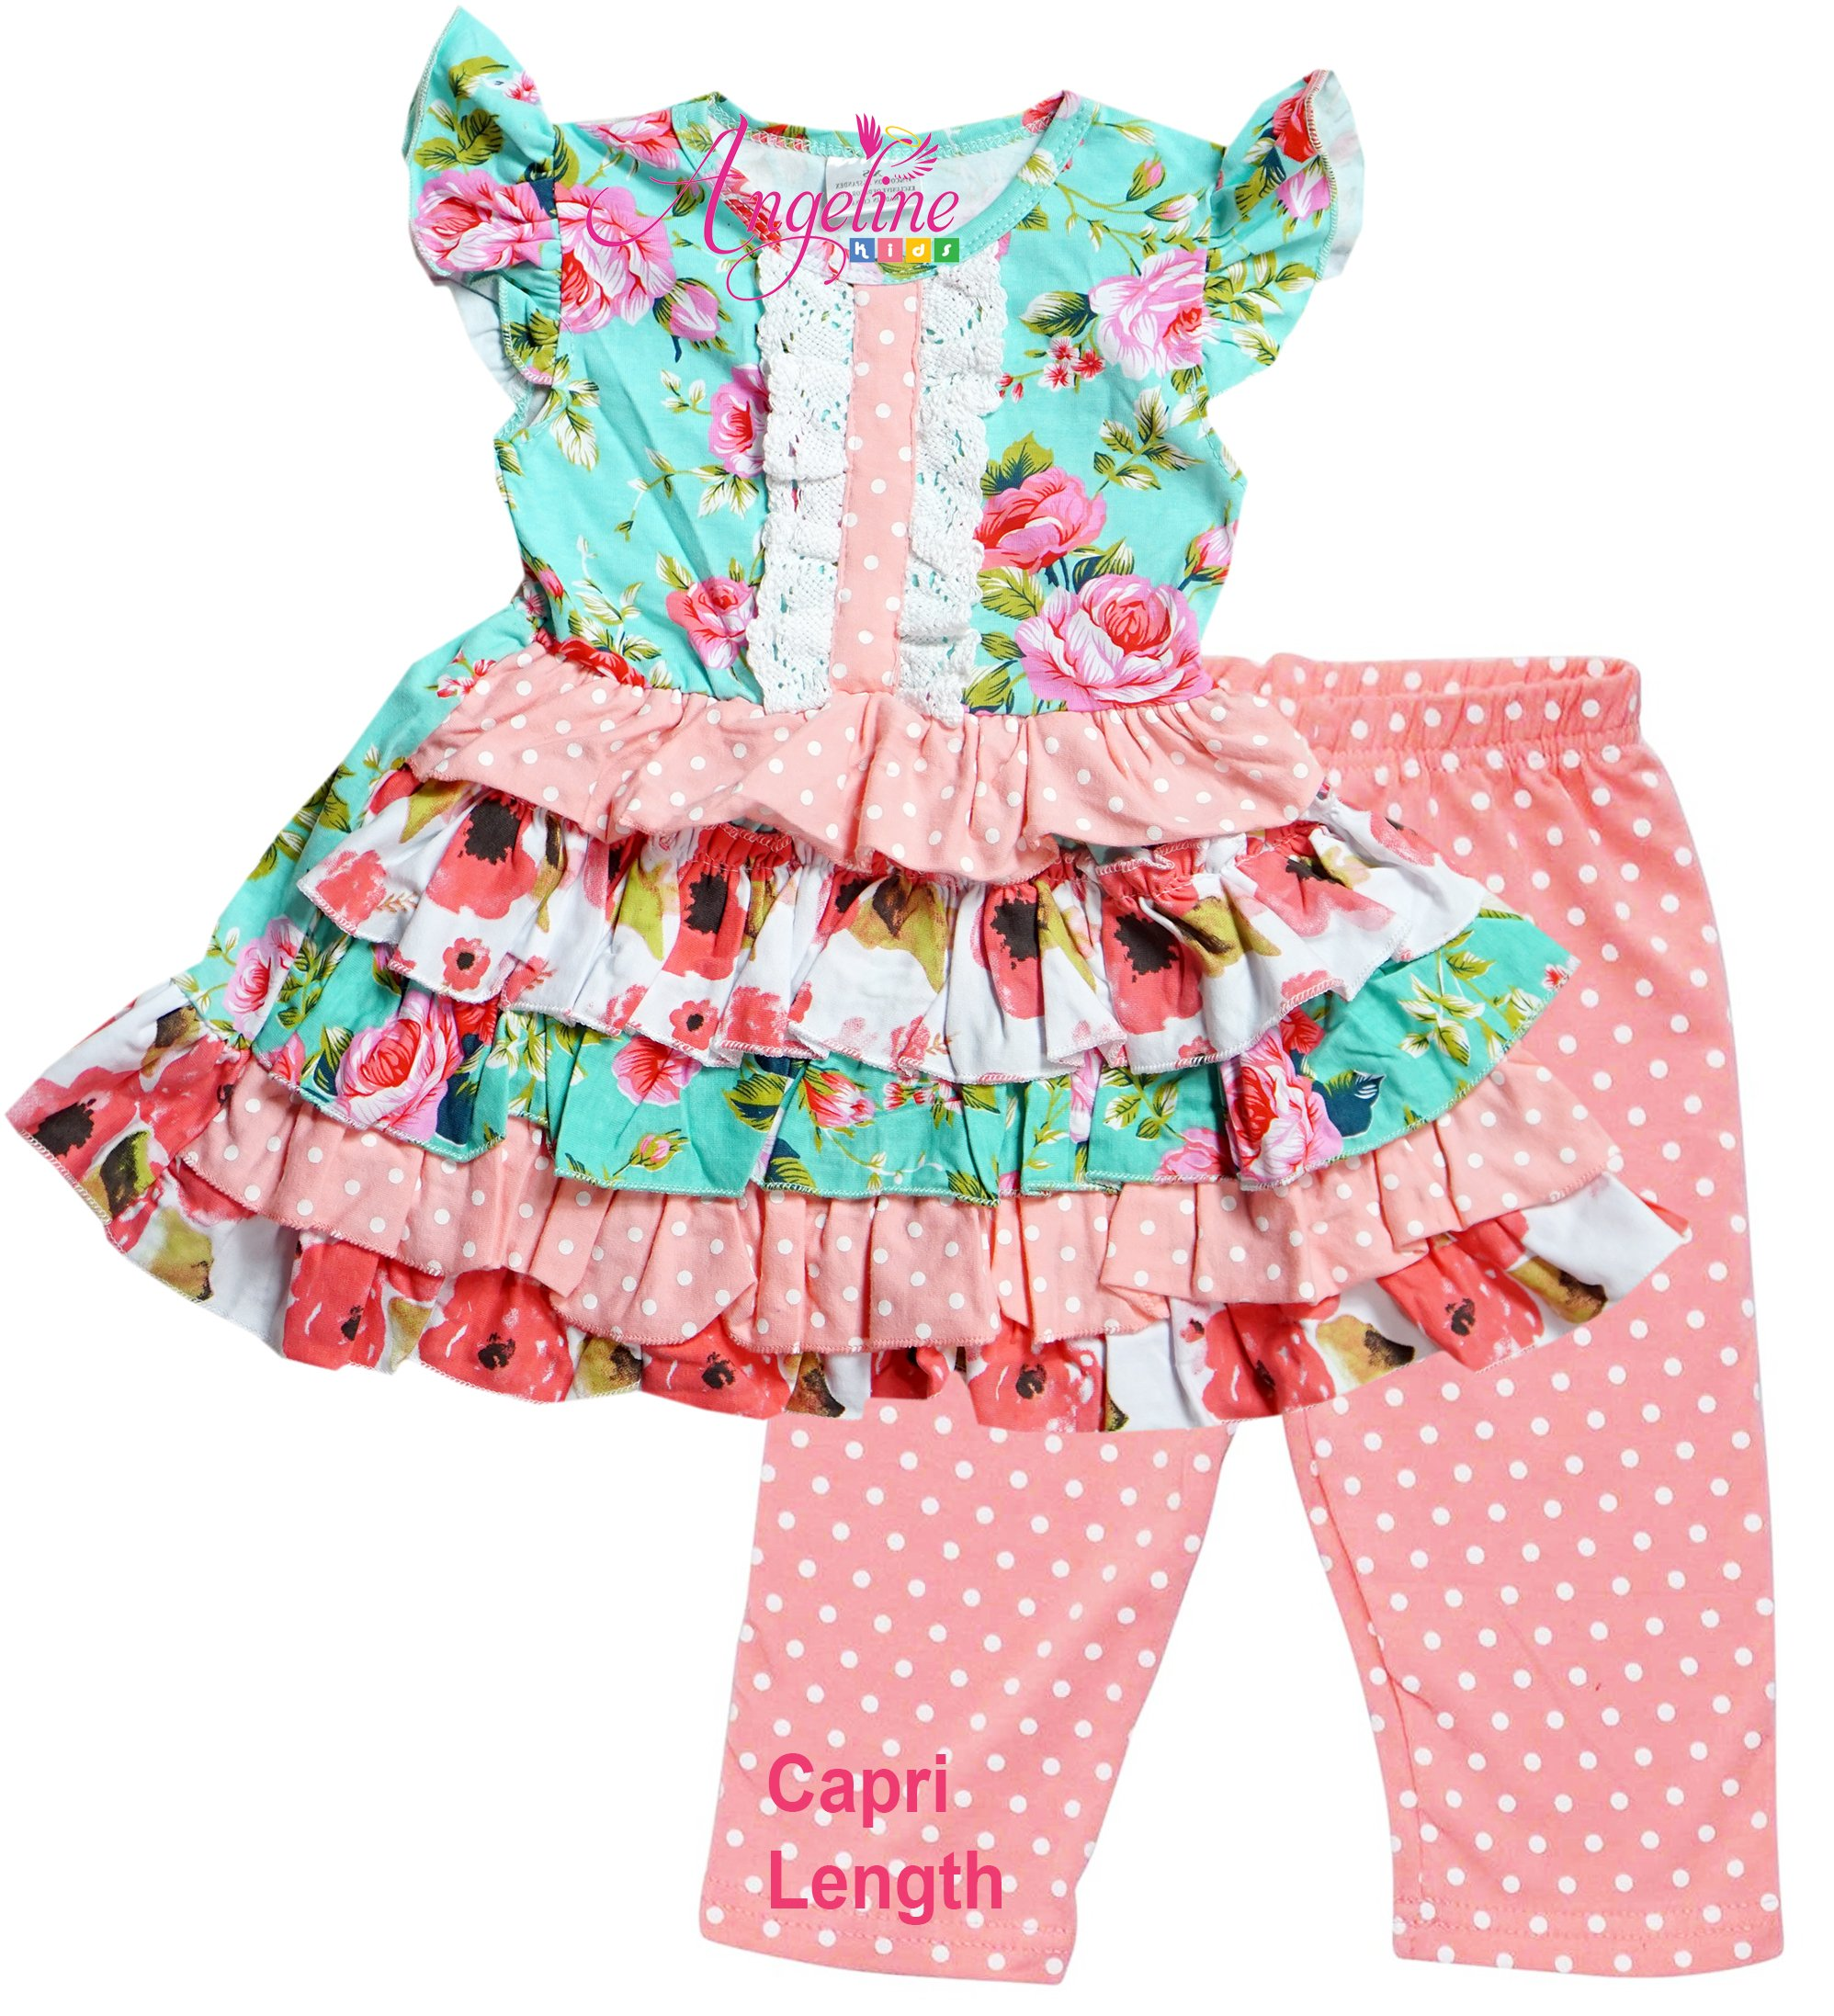 Little Girls Spring Summer Floral Tiered Coral Mint Polka Dots Capri Set 5/L